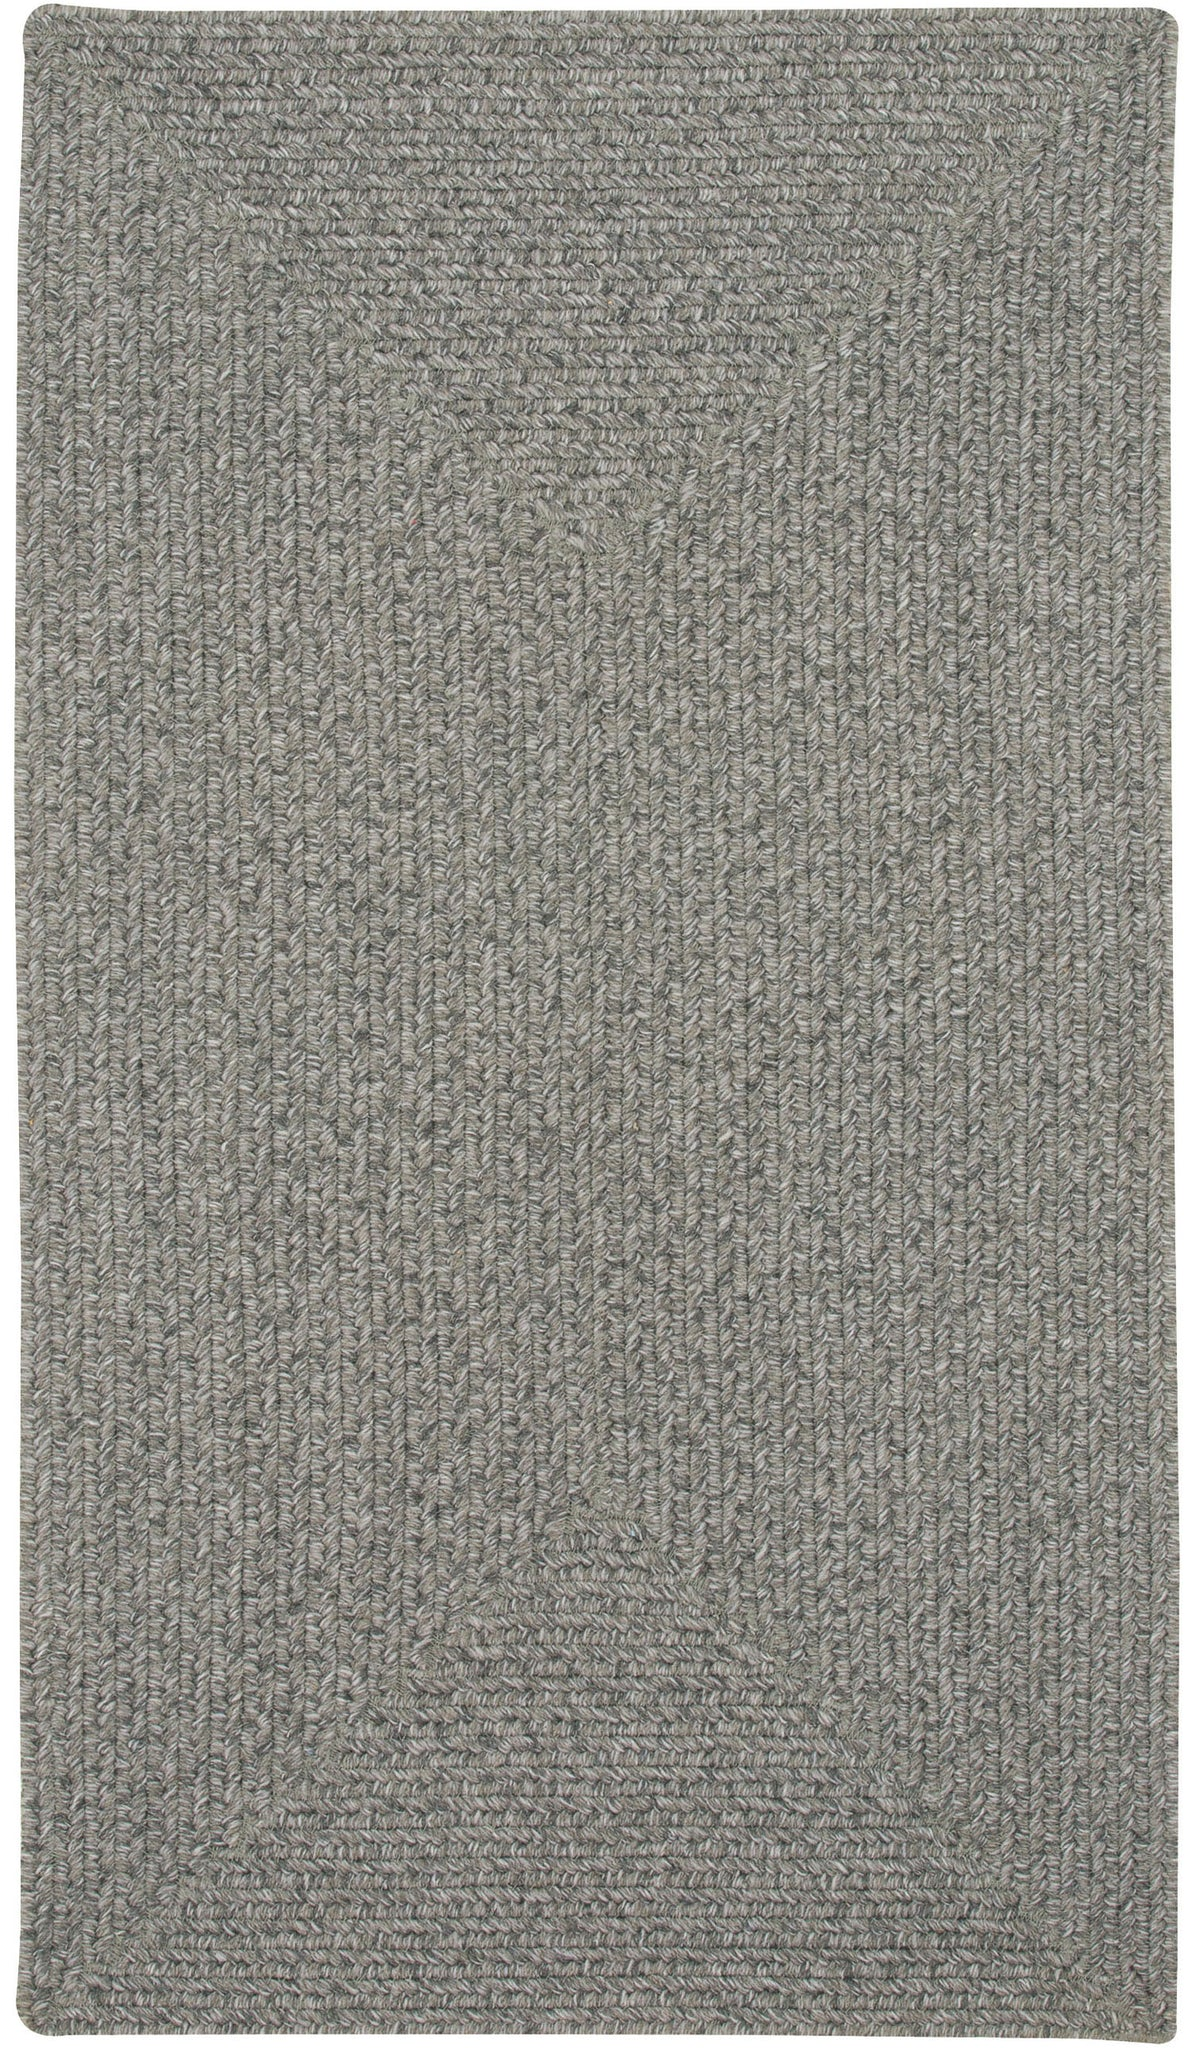 Capel Manteo 0050 Smoke 350 Area Rug main image